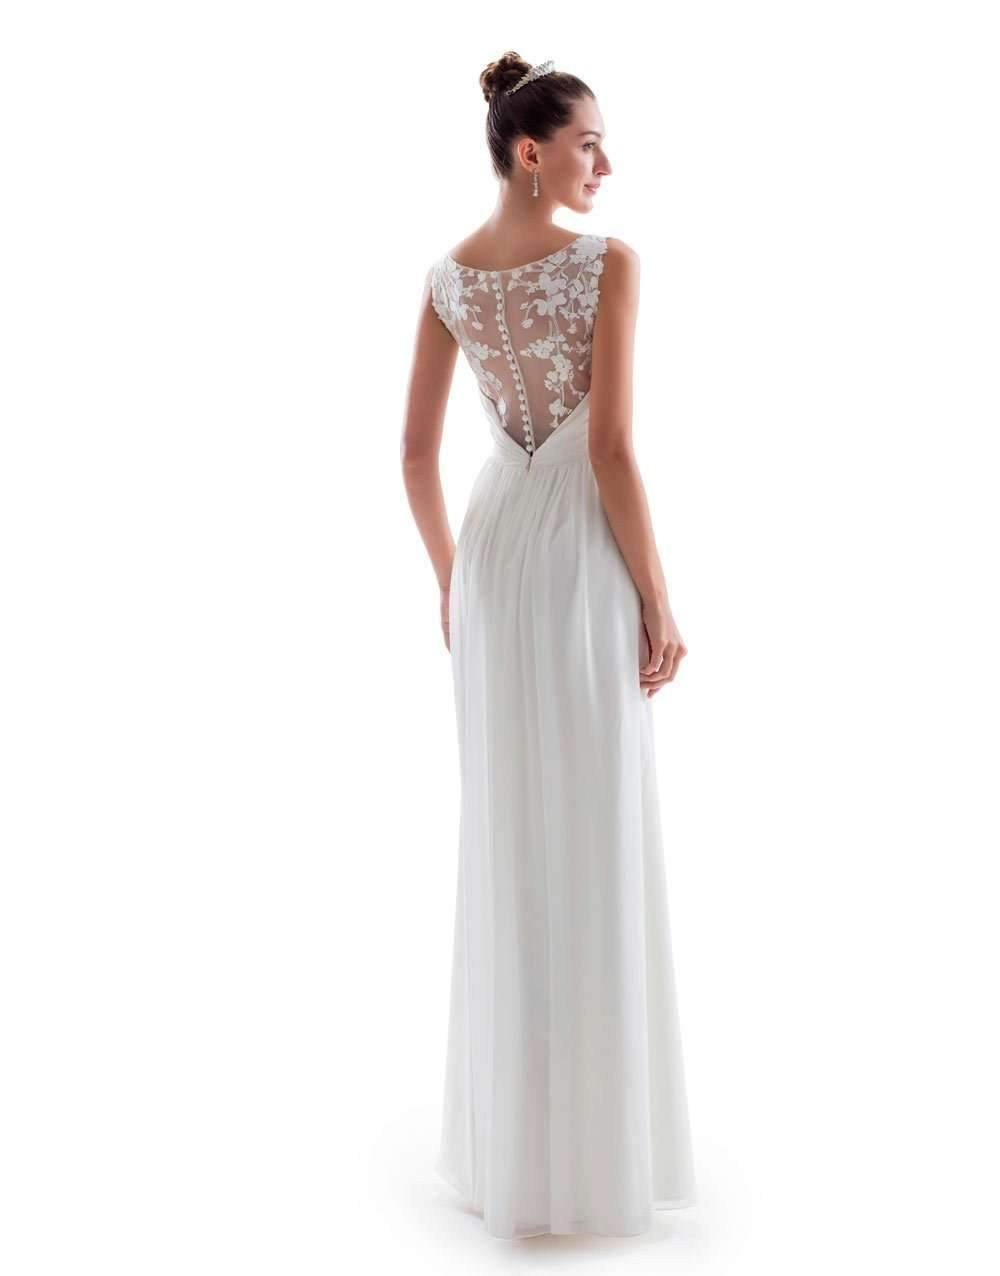 UK14 - VENUS - BETH - SALE - Adore Bridal and Occasion Wear